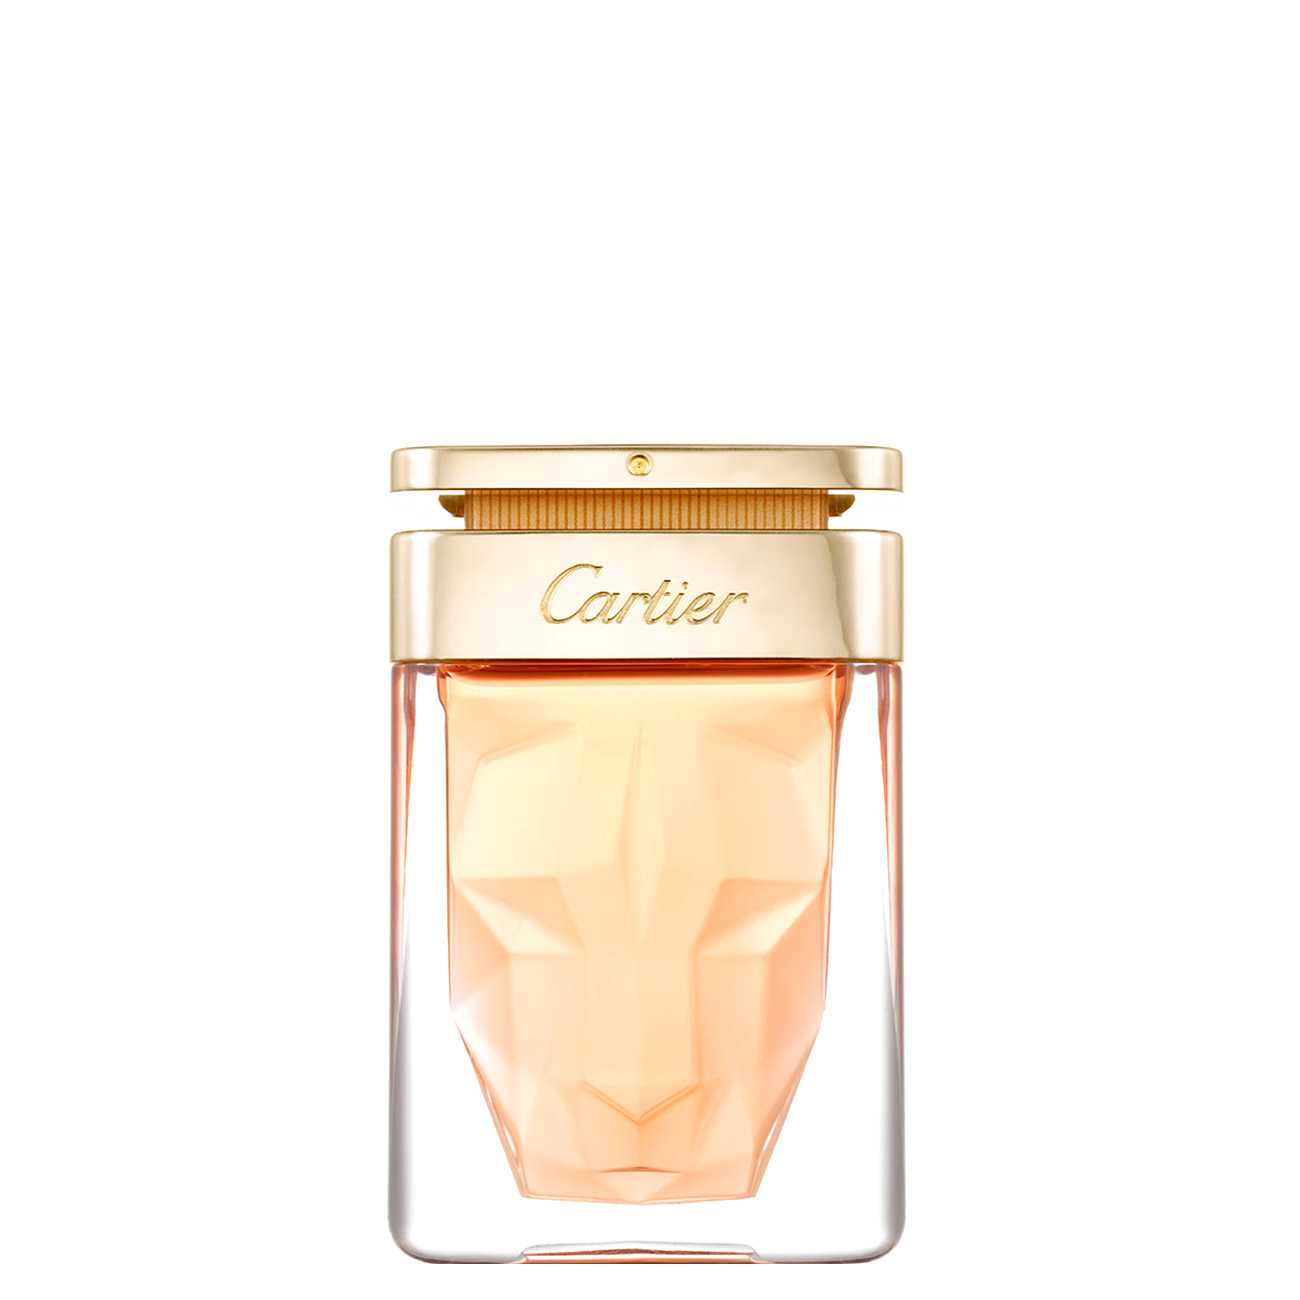 La Panthere 50ml Cartier imagine 2021 bestvalue.eu